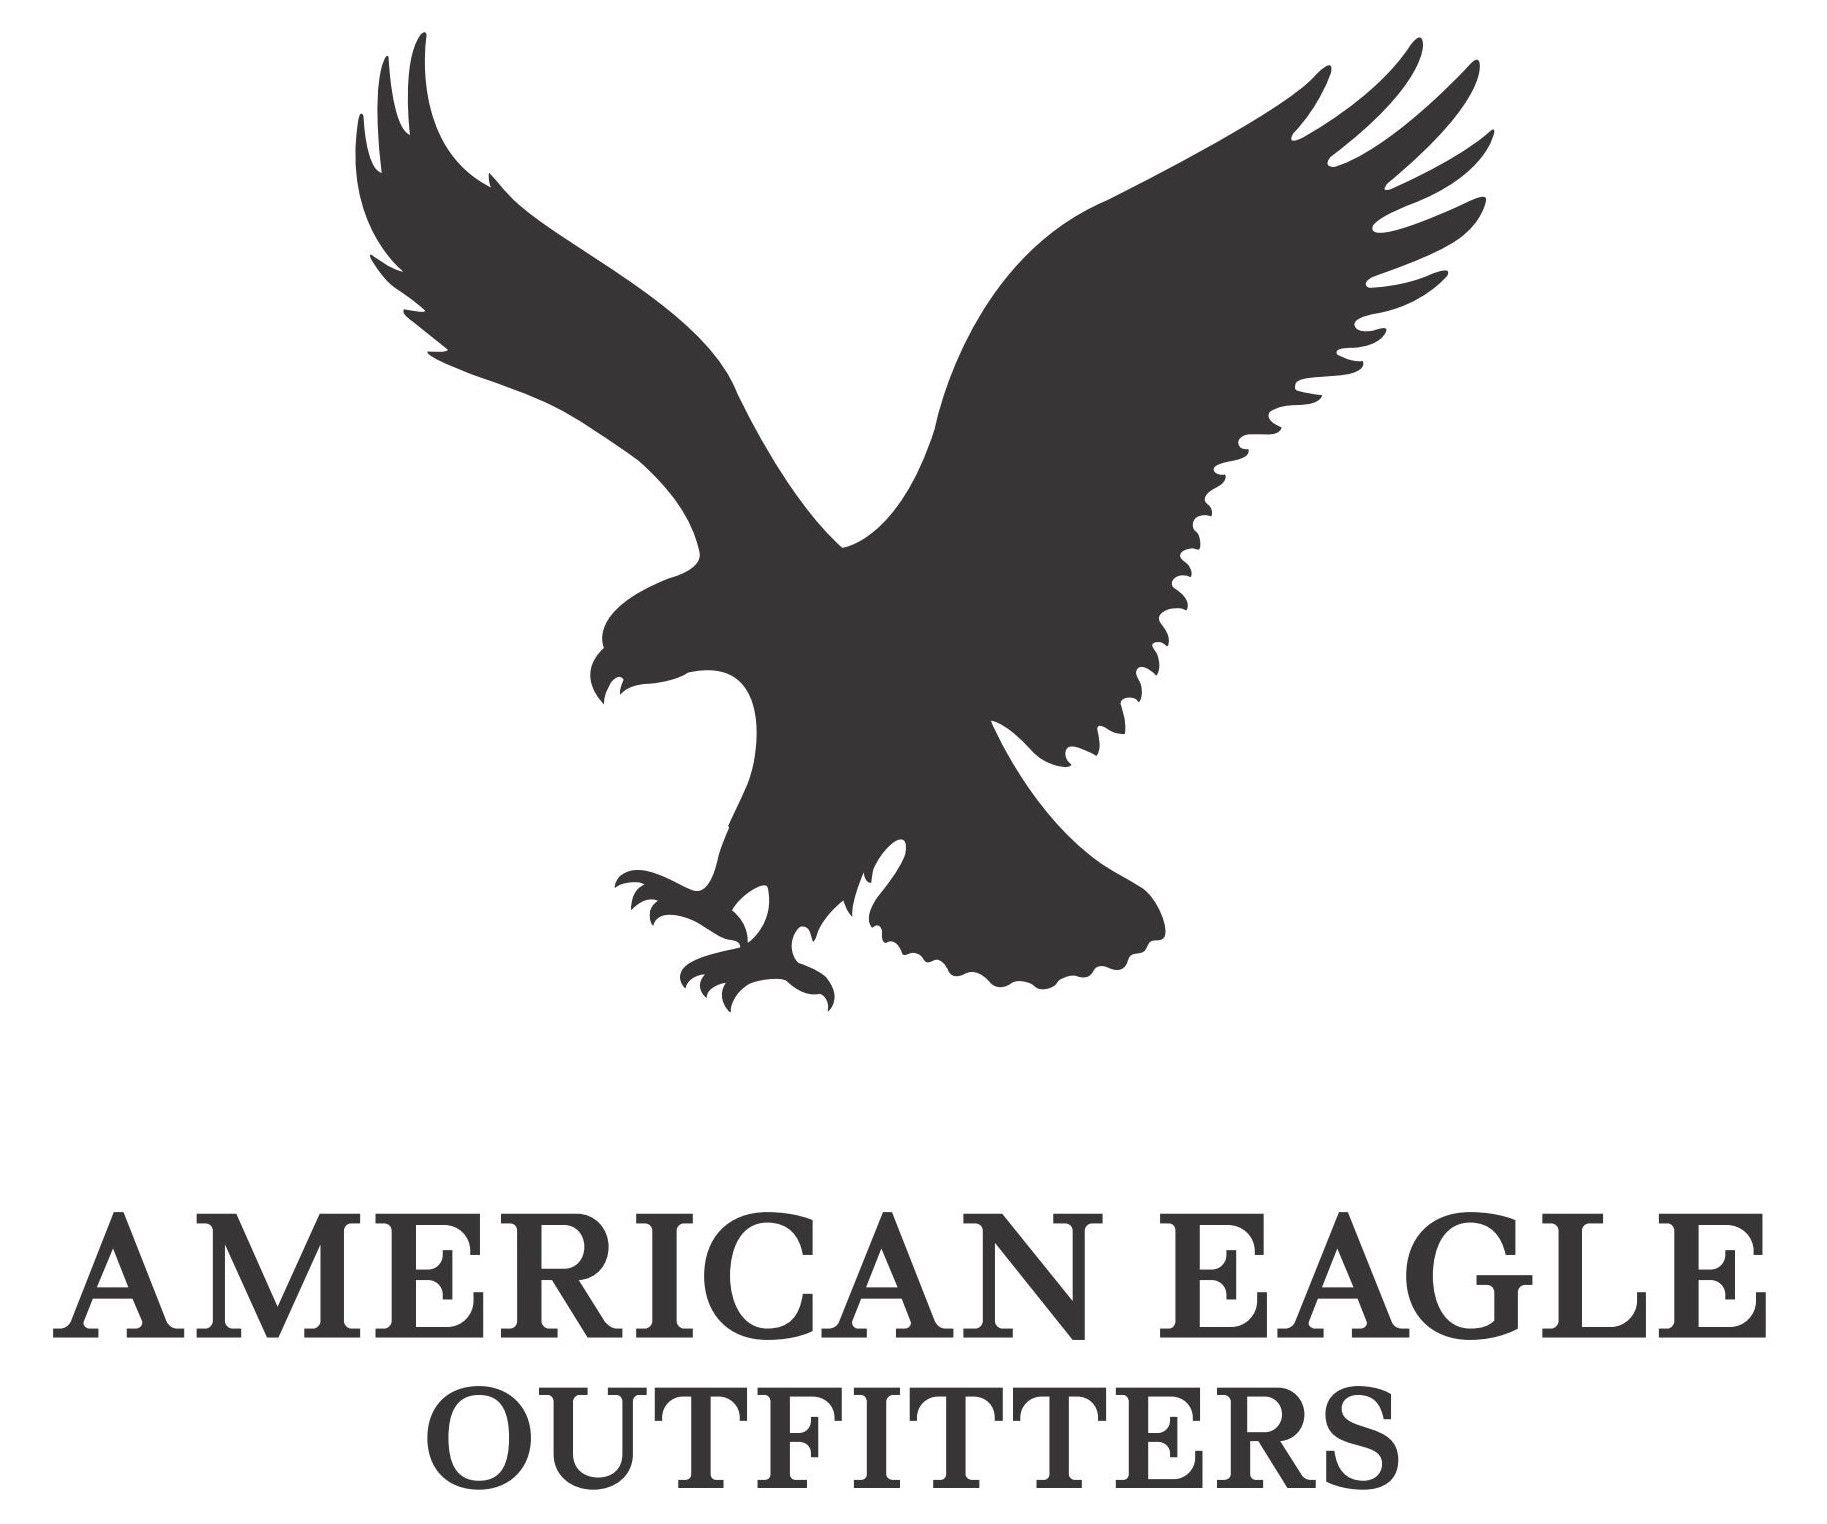 American Eagle Outfitters avis, opinions et commentaires